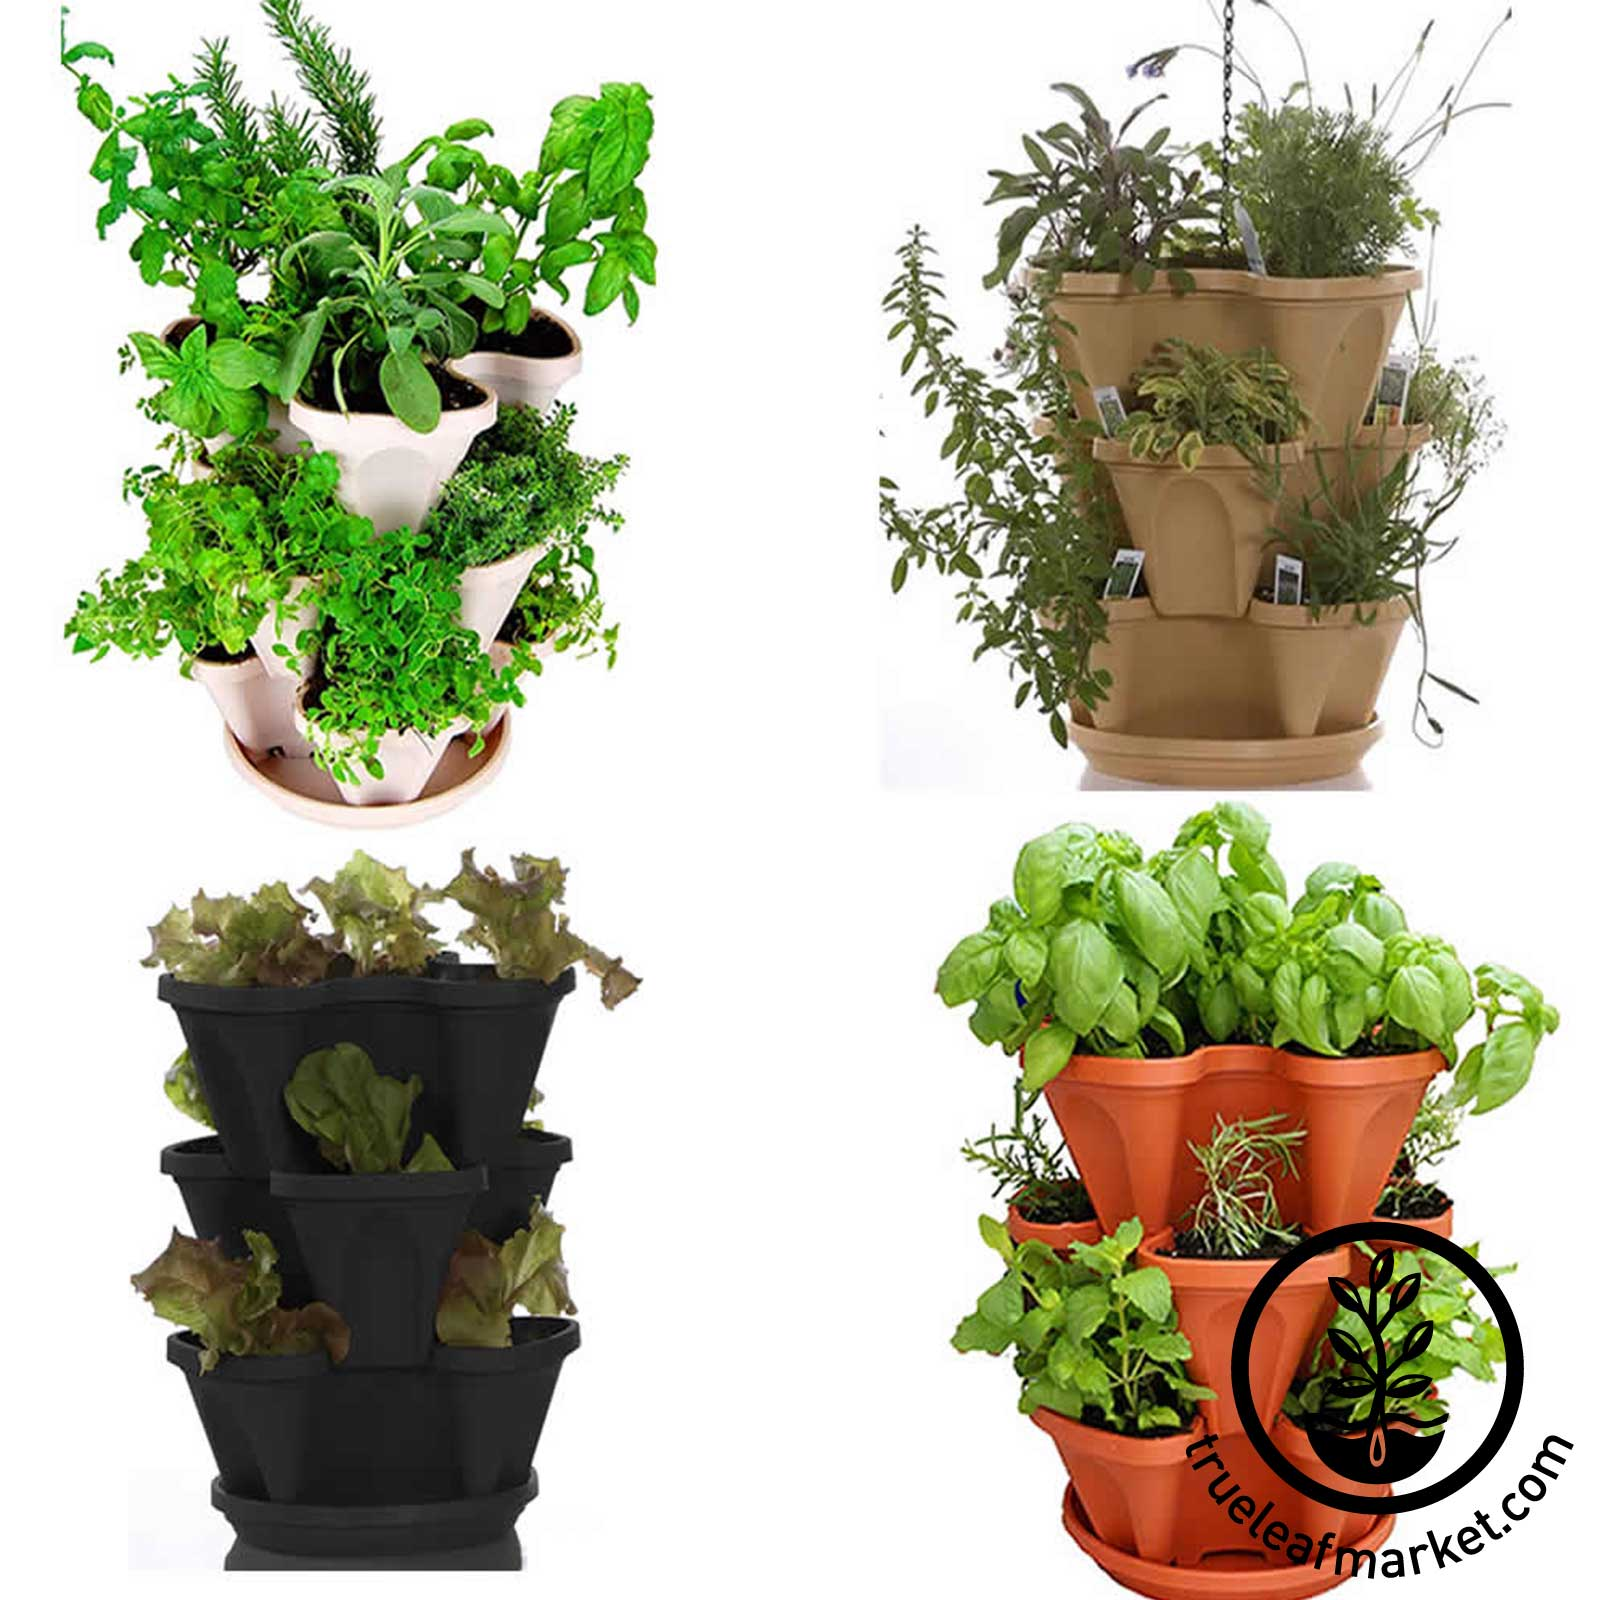 Garden Stacker + The Indoor Medicinal Herb Garden